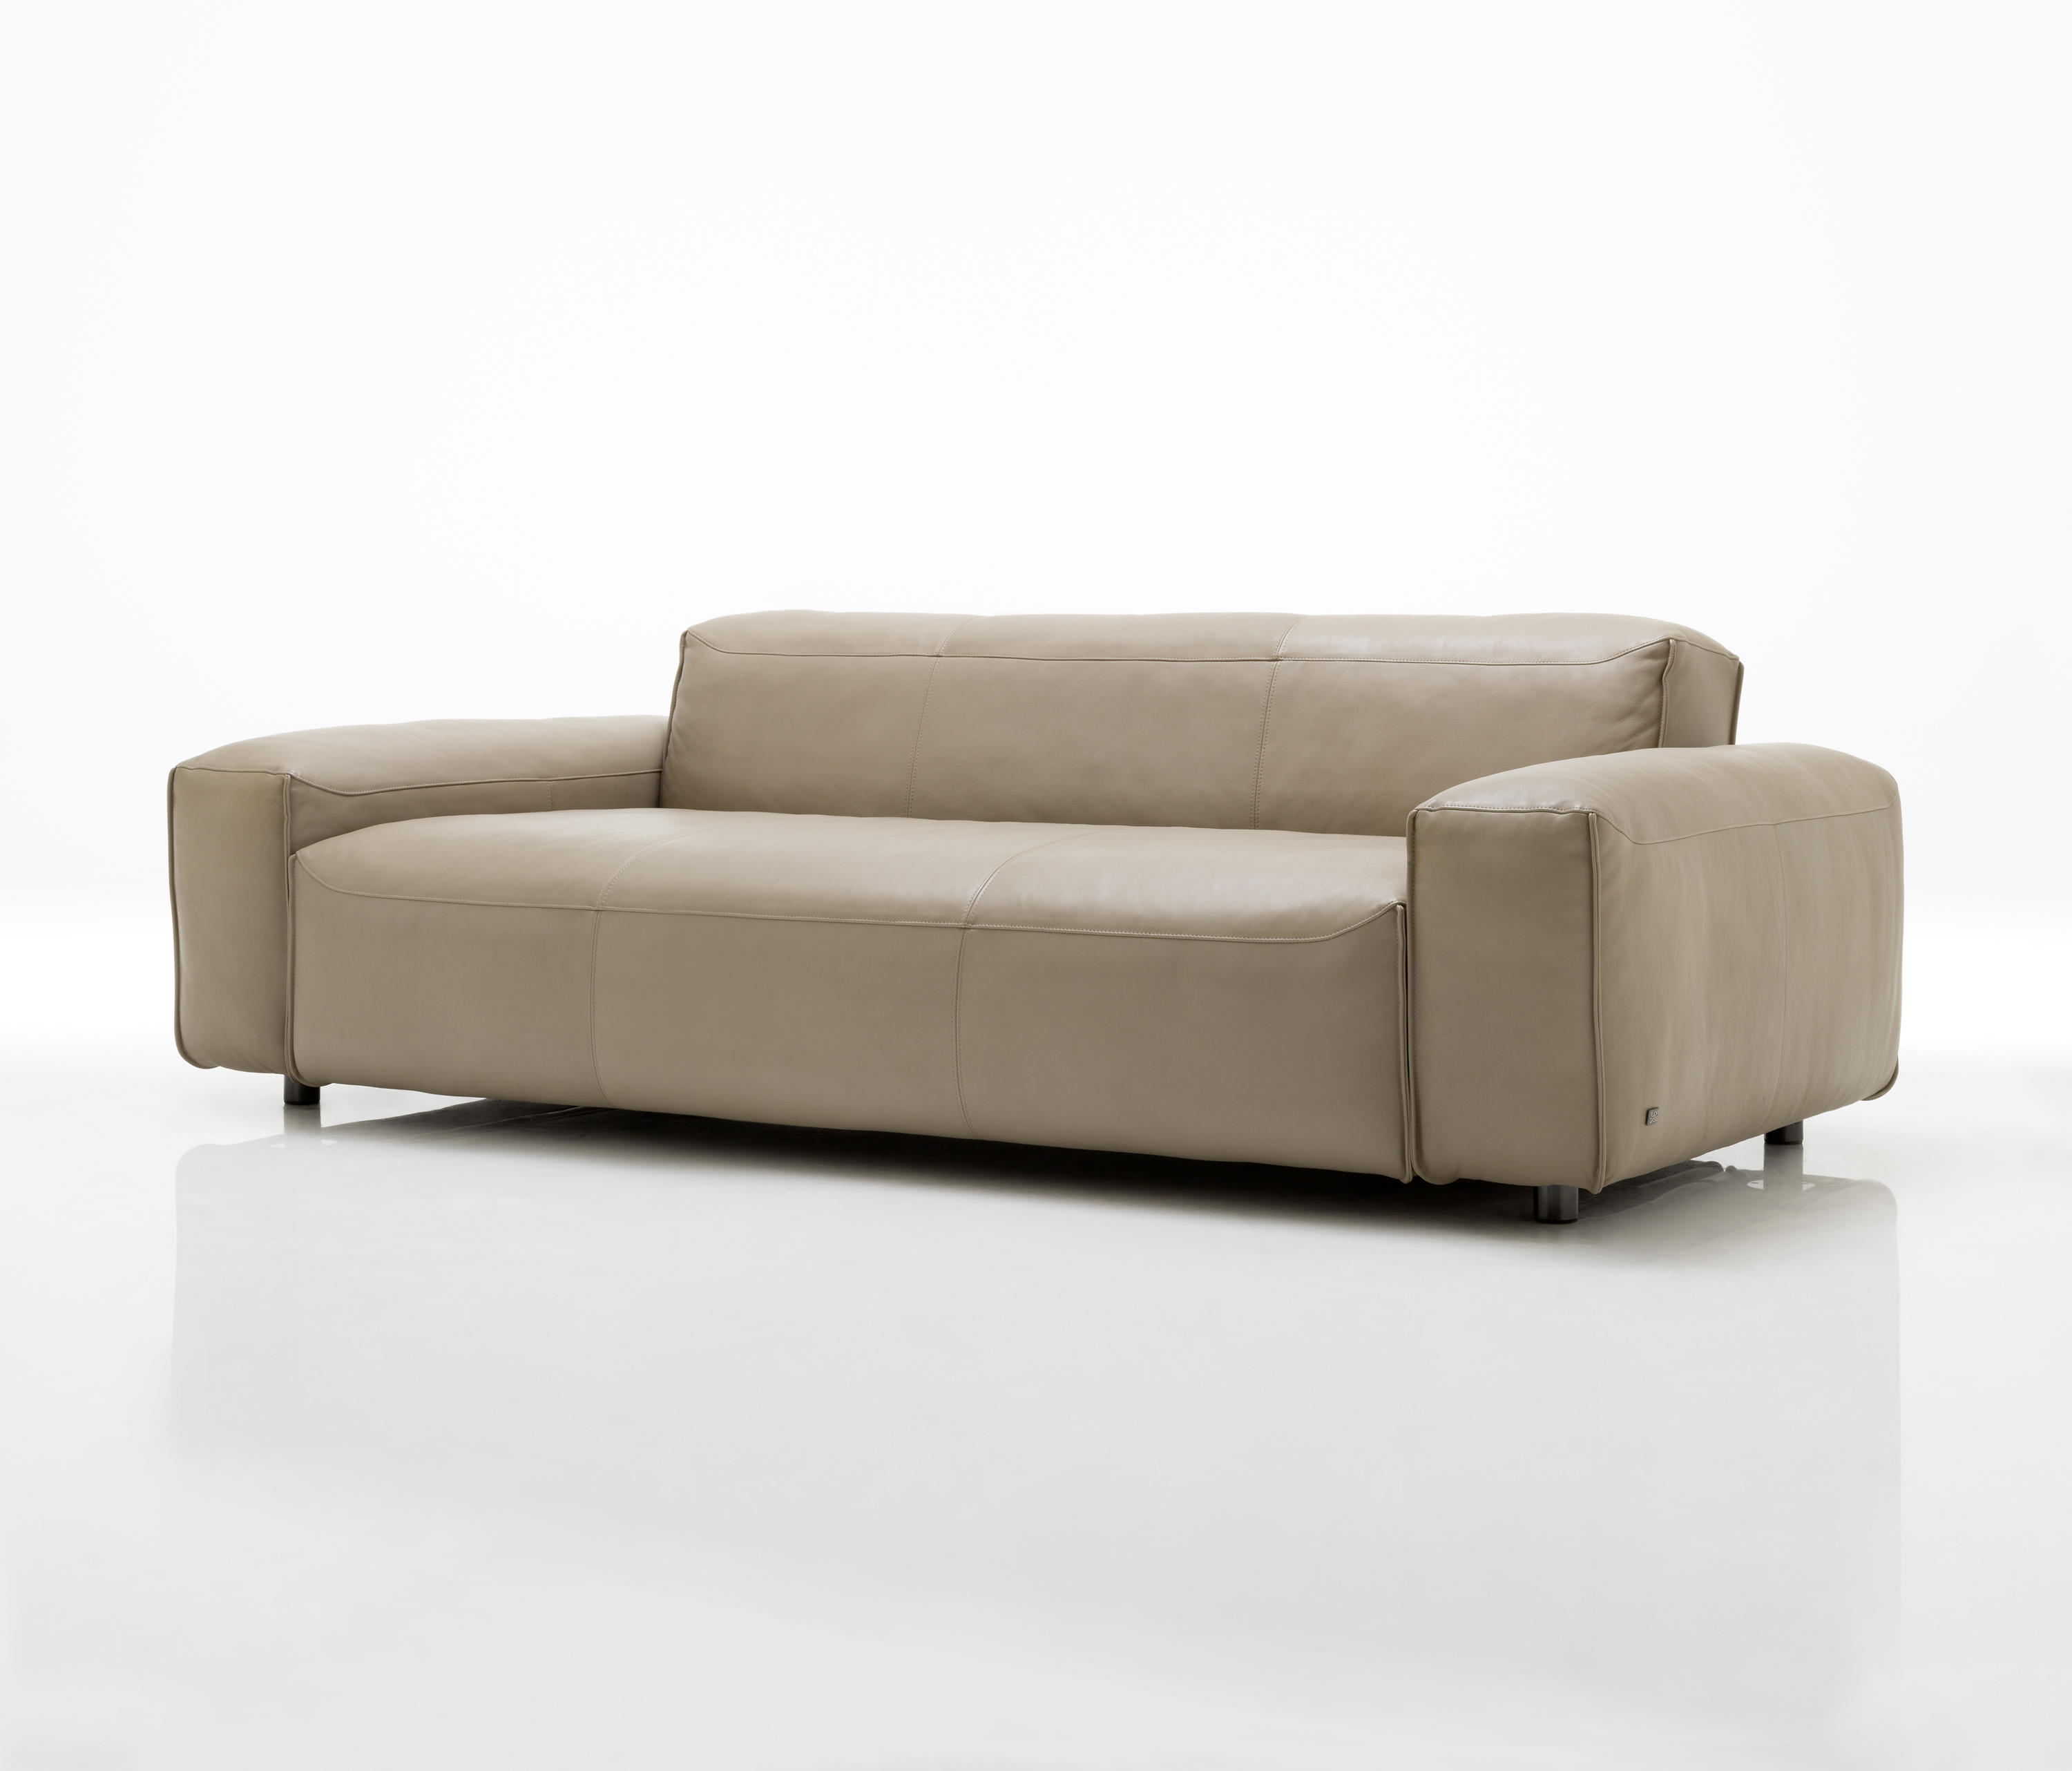 Rolf benz mio loungesofas von rolf benz architonic for Rolf benz katalog